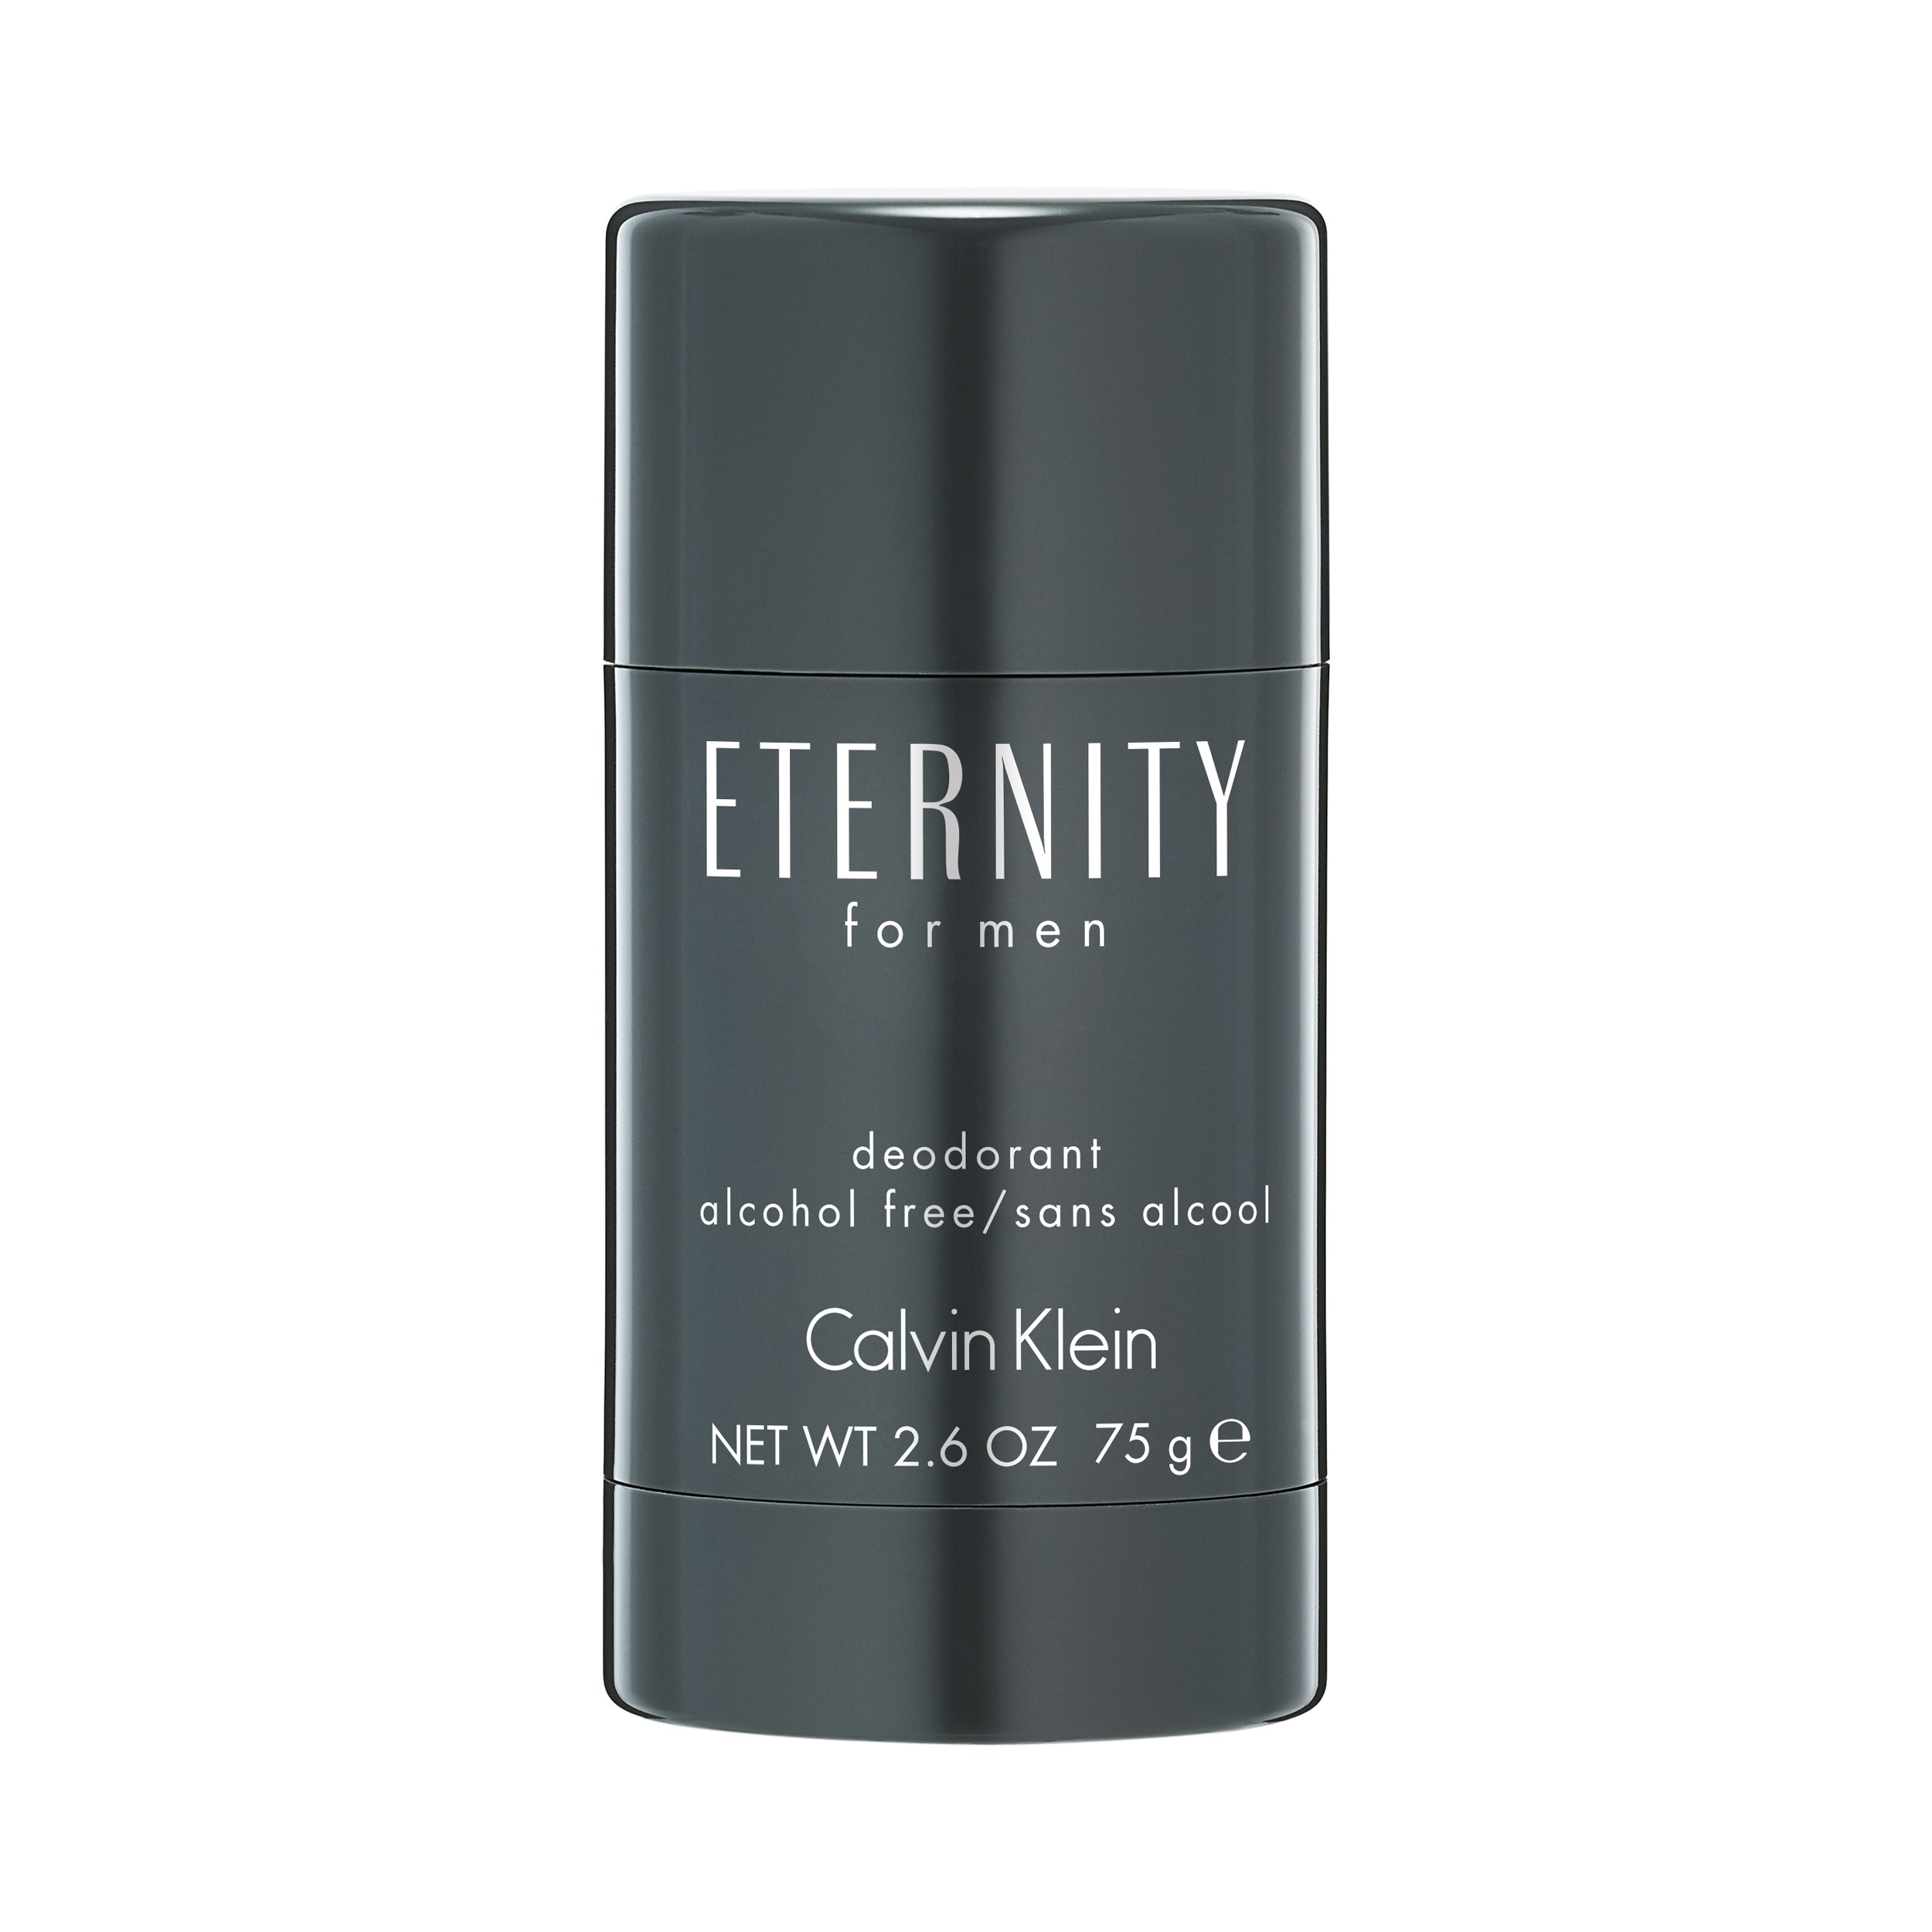 CK ETERNITY FOR MEN DEO STICK 75 GR.